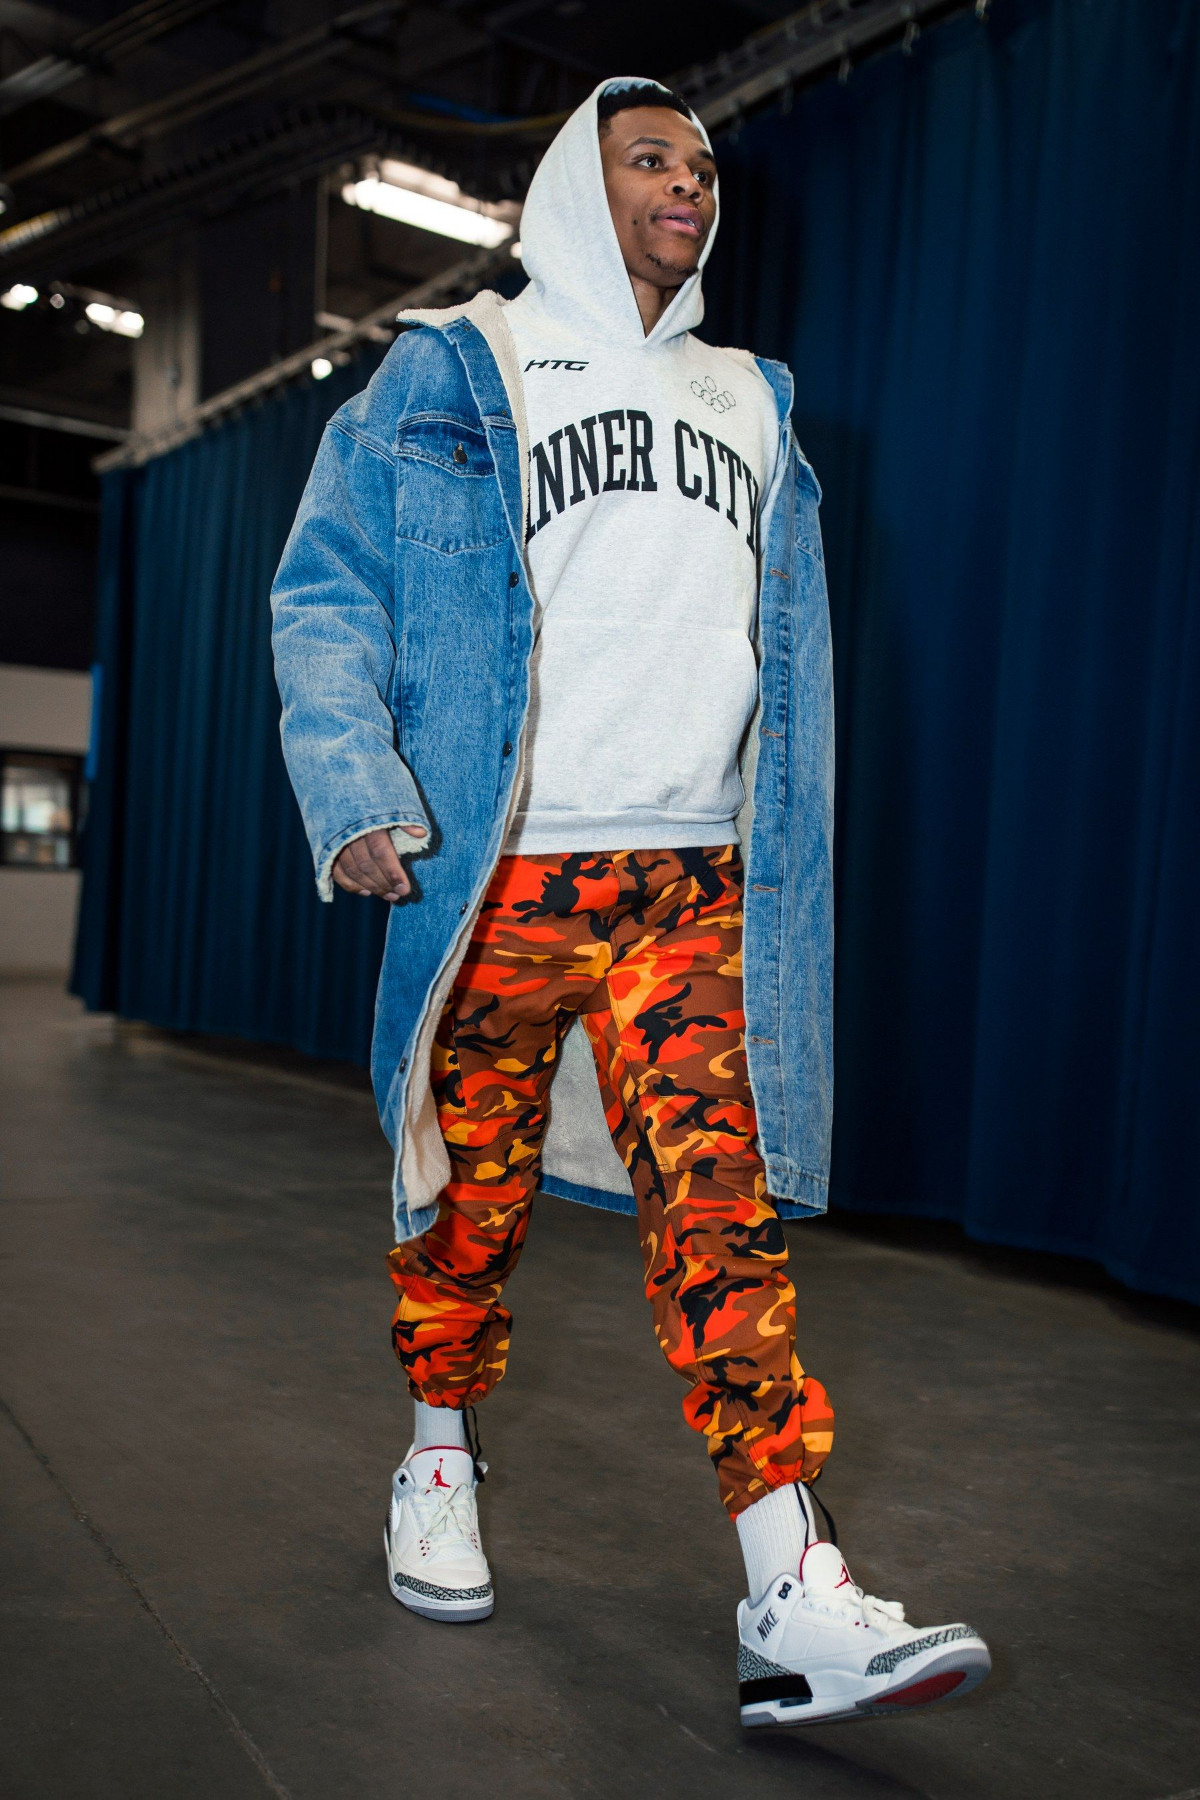 Russell Westbrook outfit camo orange pant